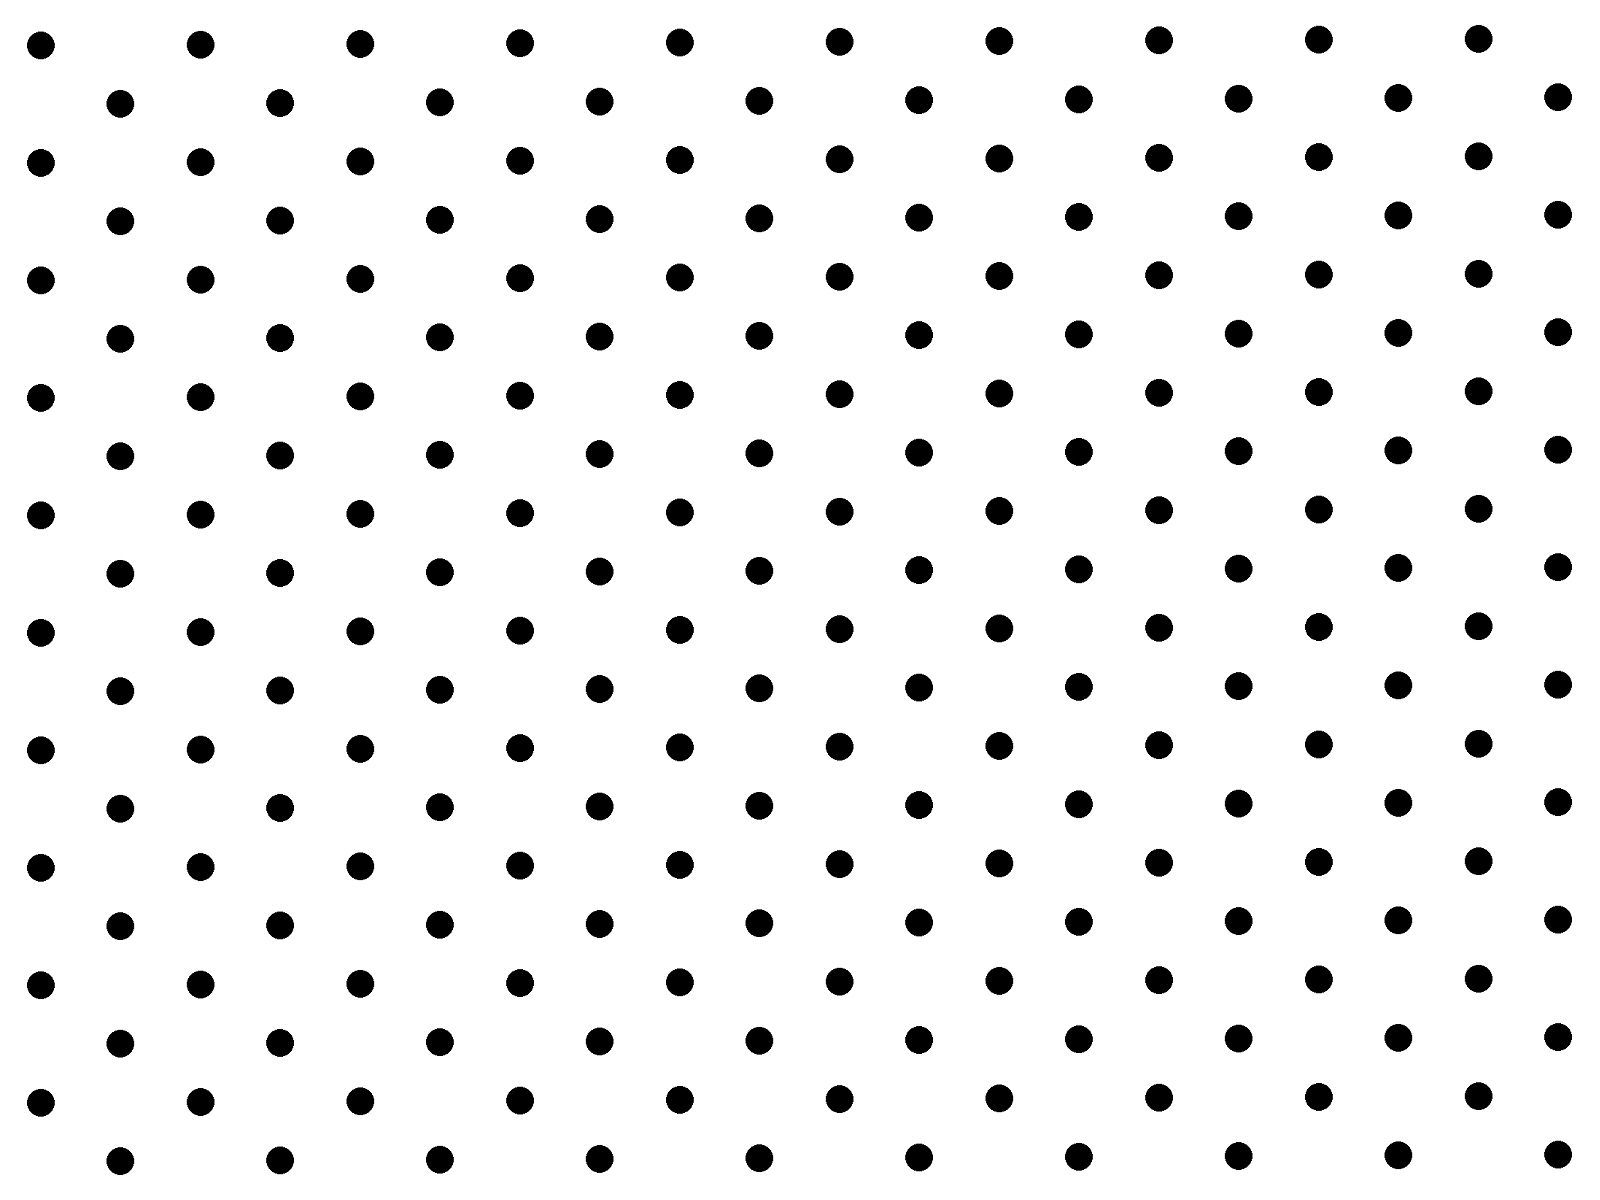 Best ideas about Polka Dot Wallpaper on Pinterest 1024×640 Cute Polka Dot Wallpapers (13 Wallpapers) | Adorable Wallpapers